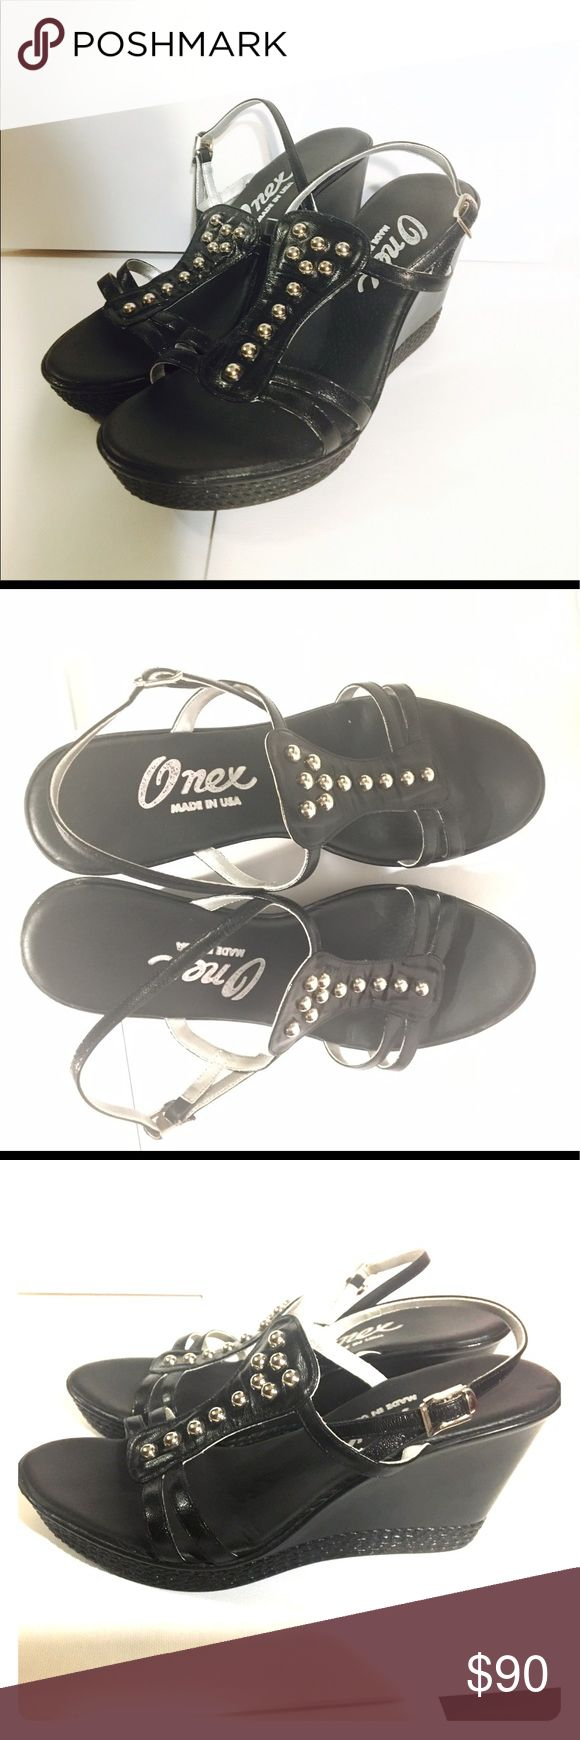 Onex Strappy Black Wedges Size 7 Worn ONE time!! These wedges are extremely comfortable ❤️ Onex brand Size 7 ❤️ NO scuffing on any part of these shoes, black in color with silver studded decoration, would look beautiful in any outfit 💕😍 Onex Shoes Wedges